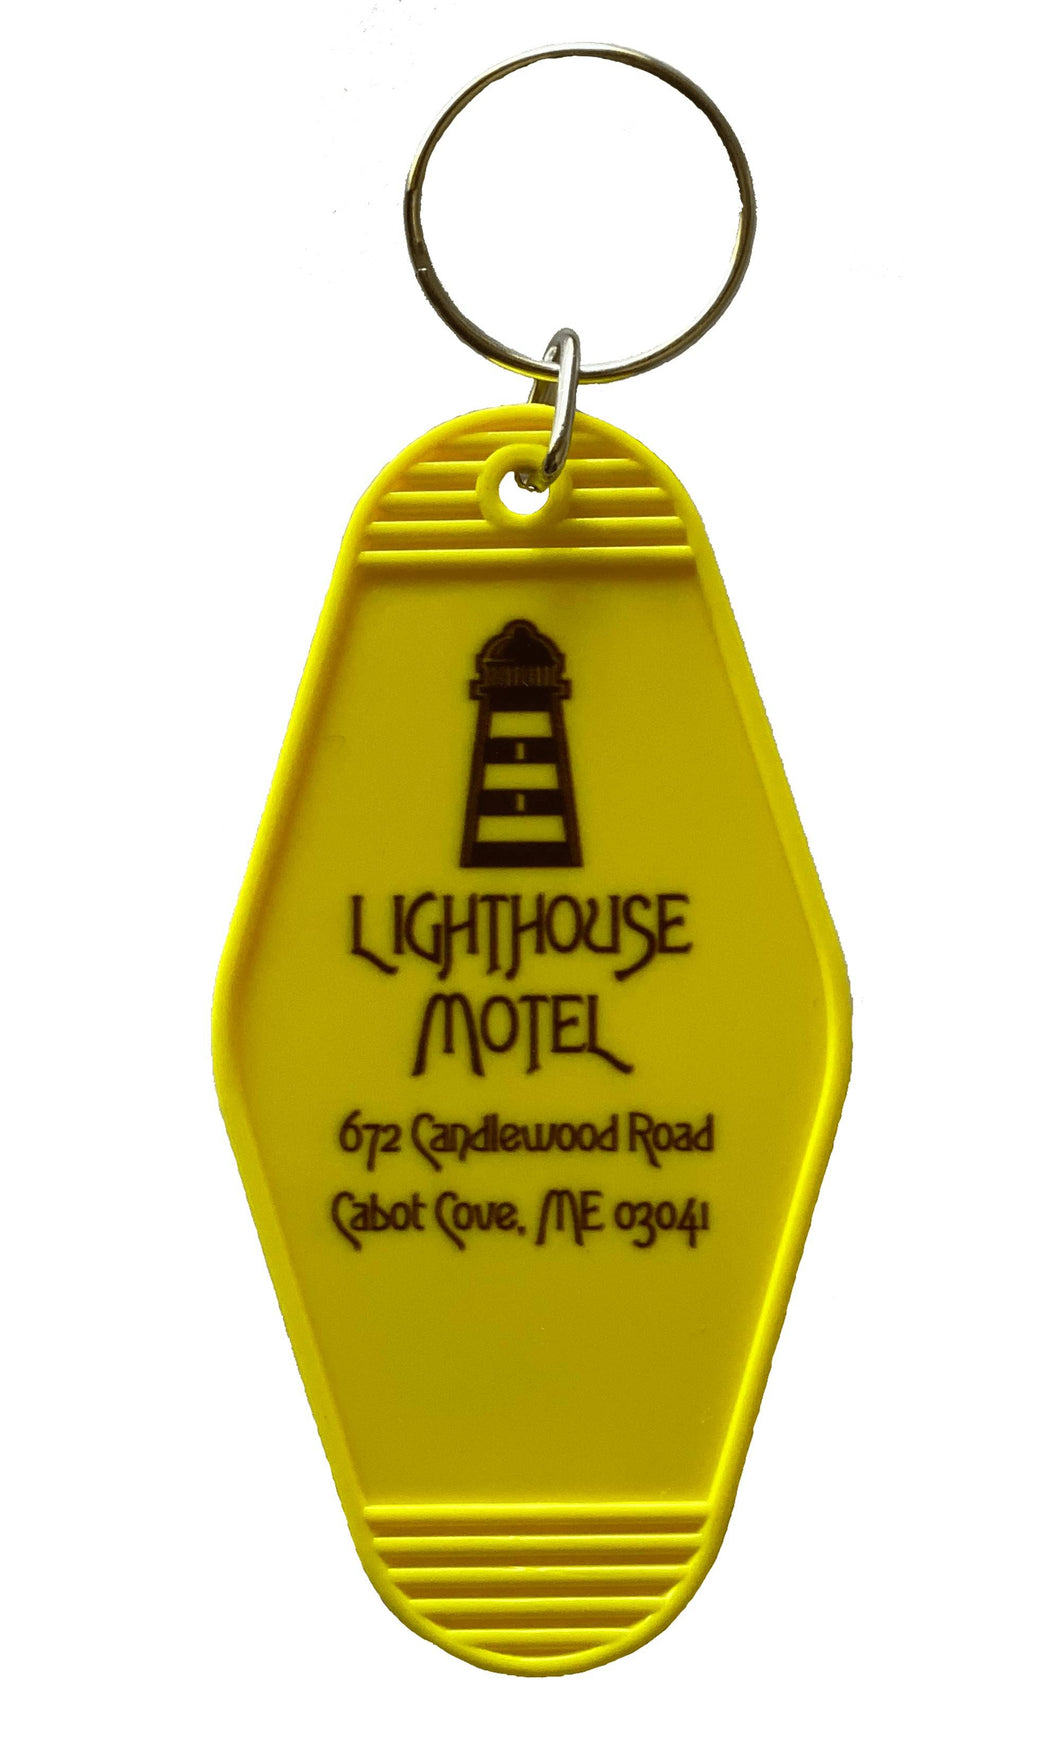 Cabot Cove Lighthouse Motel Key Tag